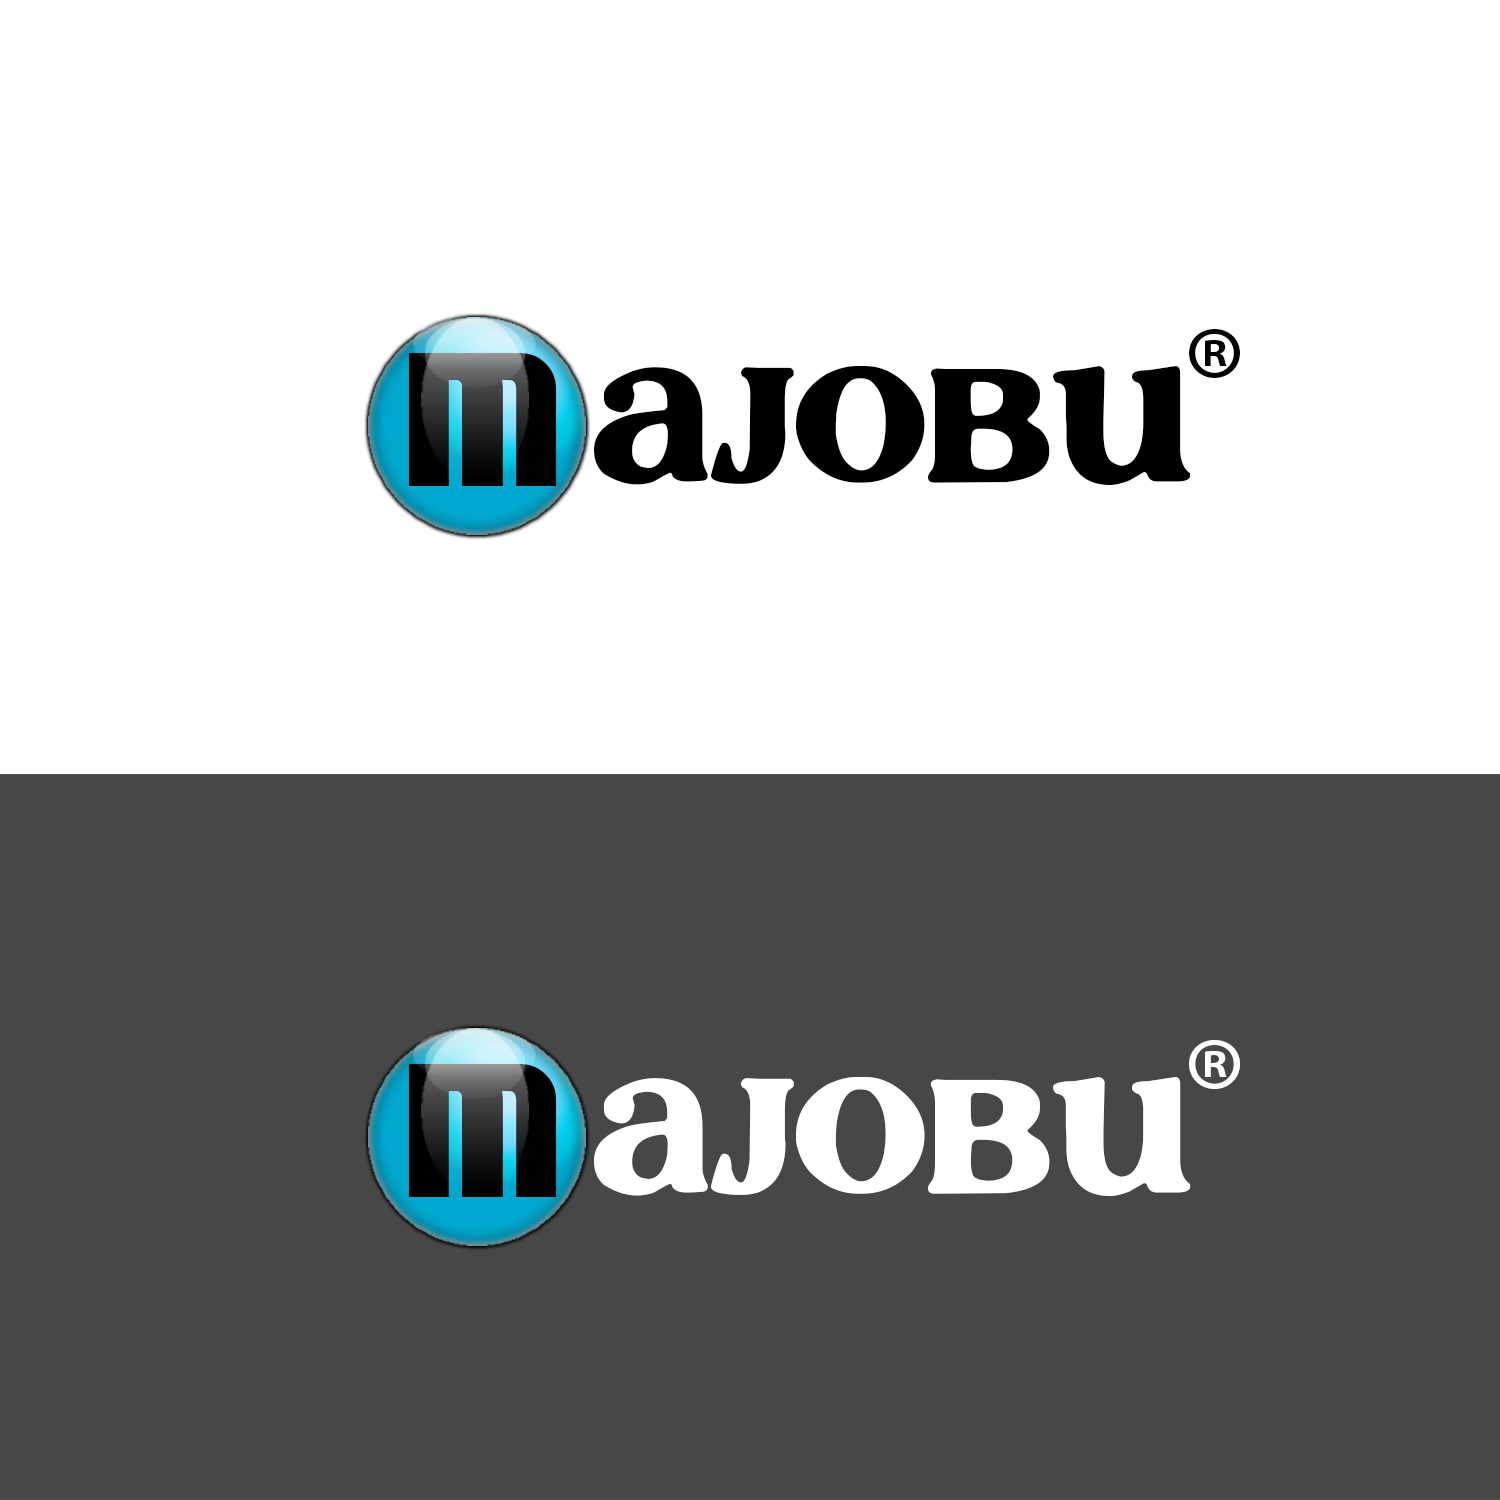 Logo Design by Kivi Marc Sarmiento - Entry No. 18 in the Logo Design Contest Inspiring Logo Design for Majobu.